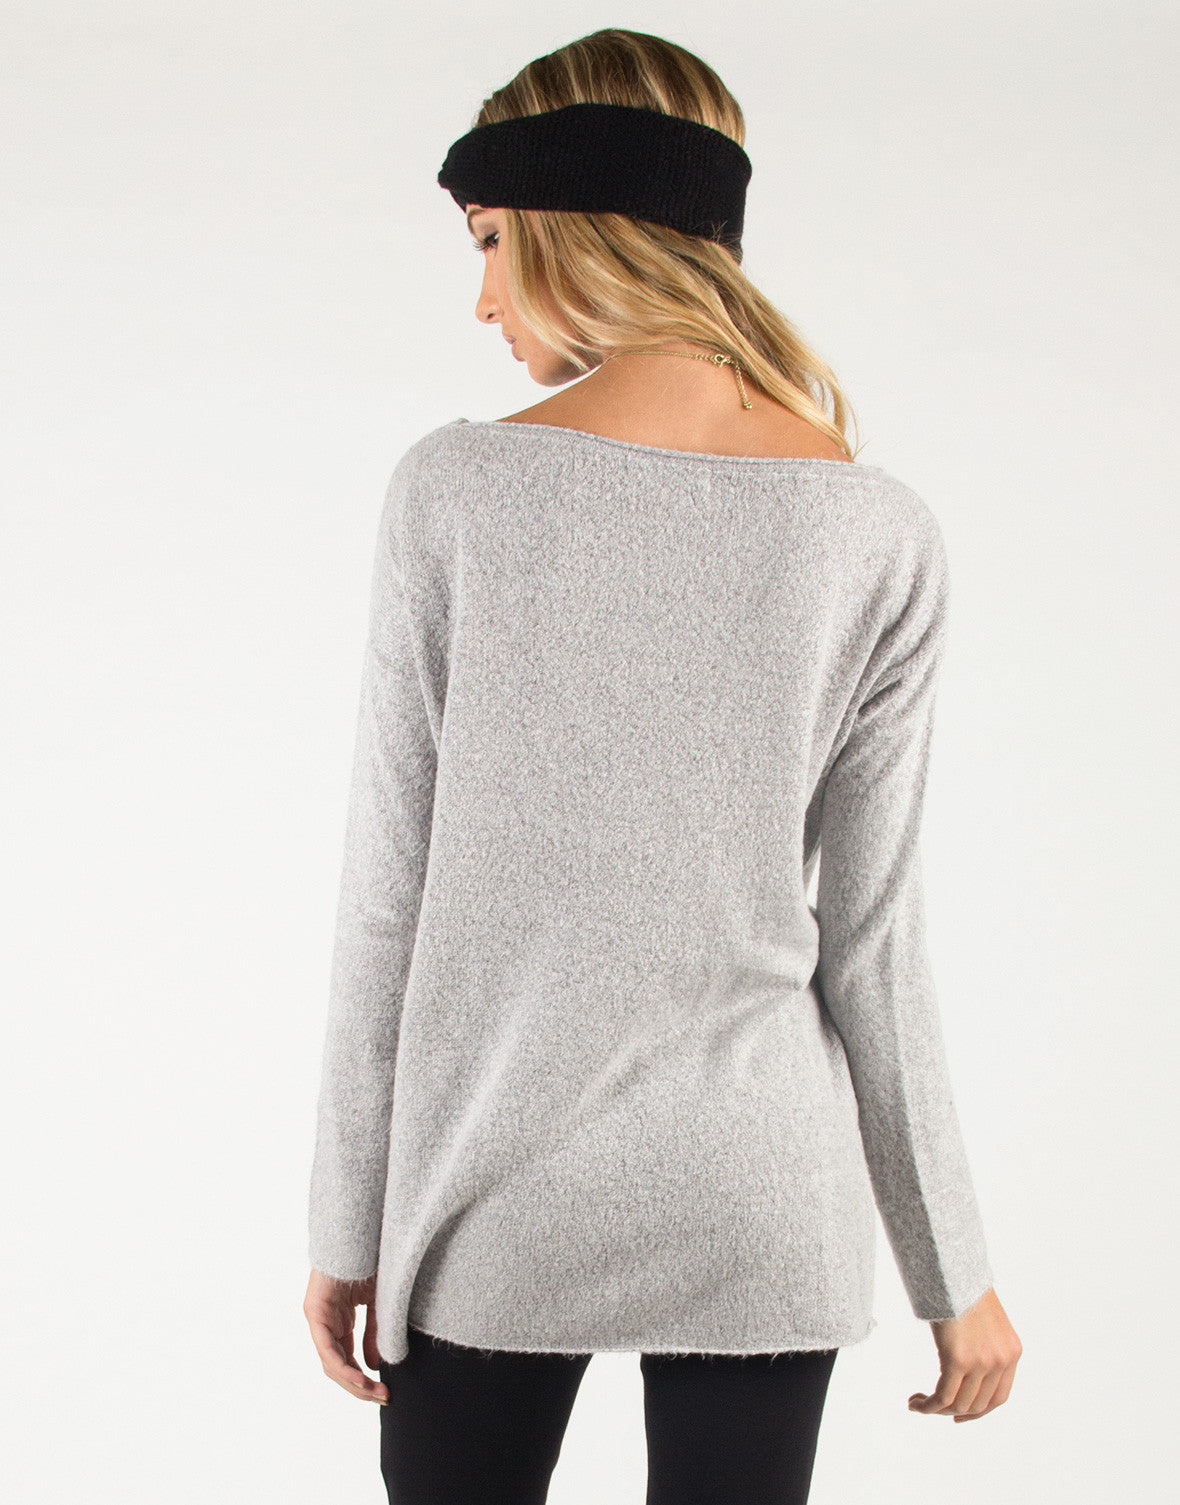 Super Soft Sweater Top